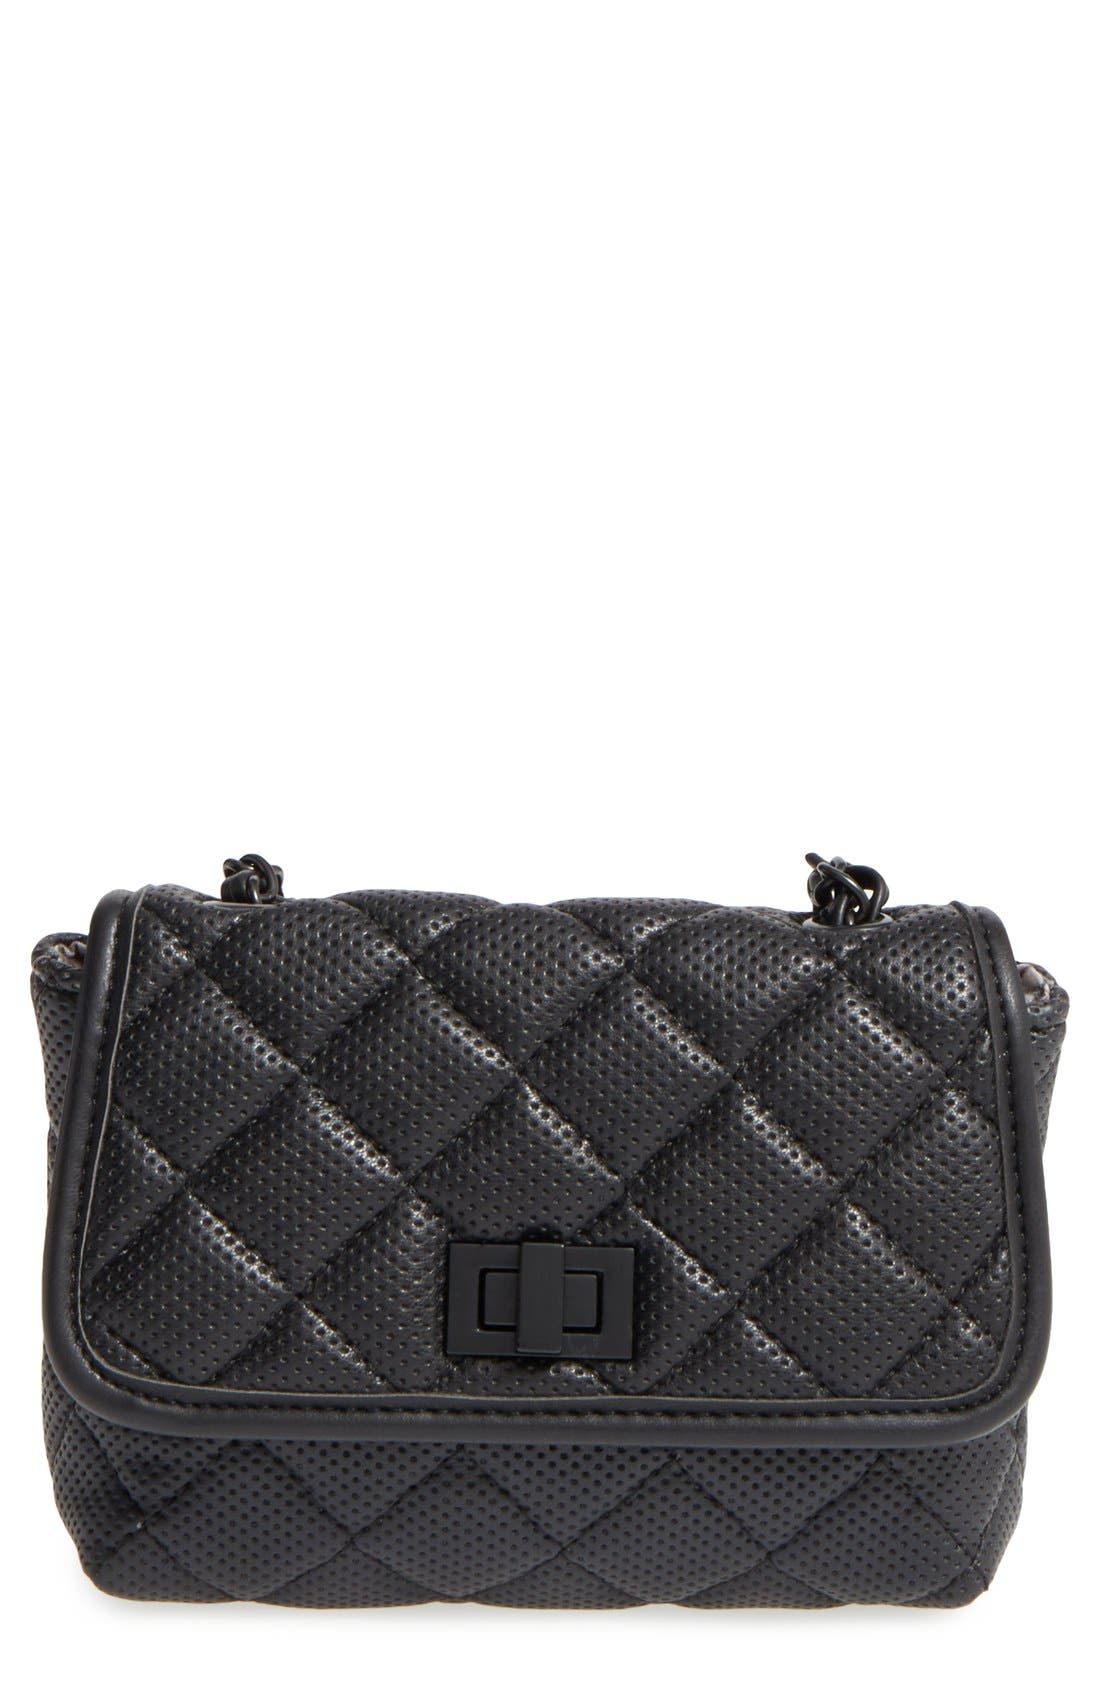 Main Image - Steve Madden 'B Clarre' Perforated & Quilted Faux Leather Crossbody Bag